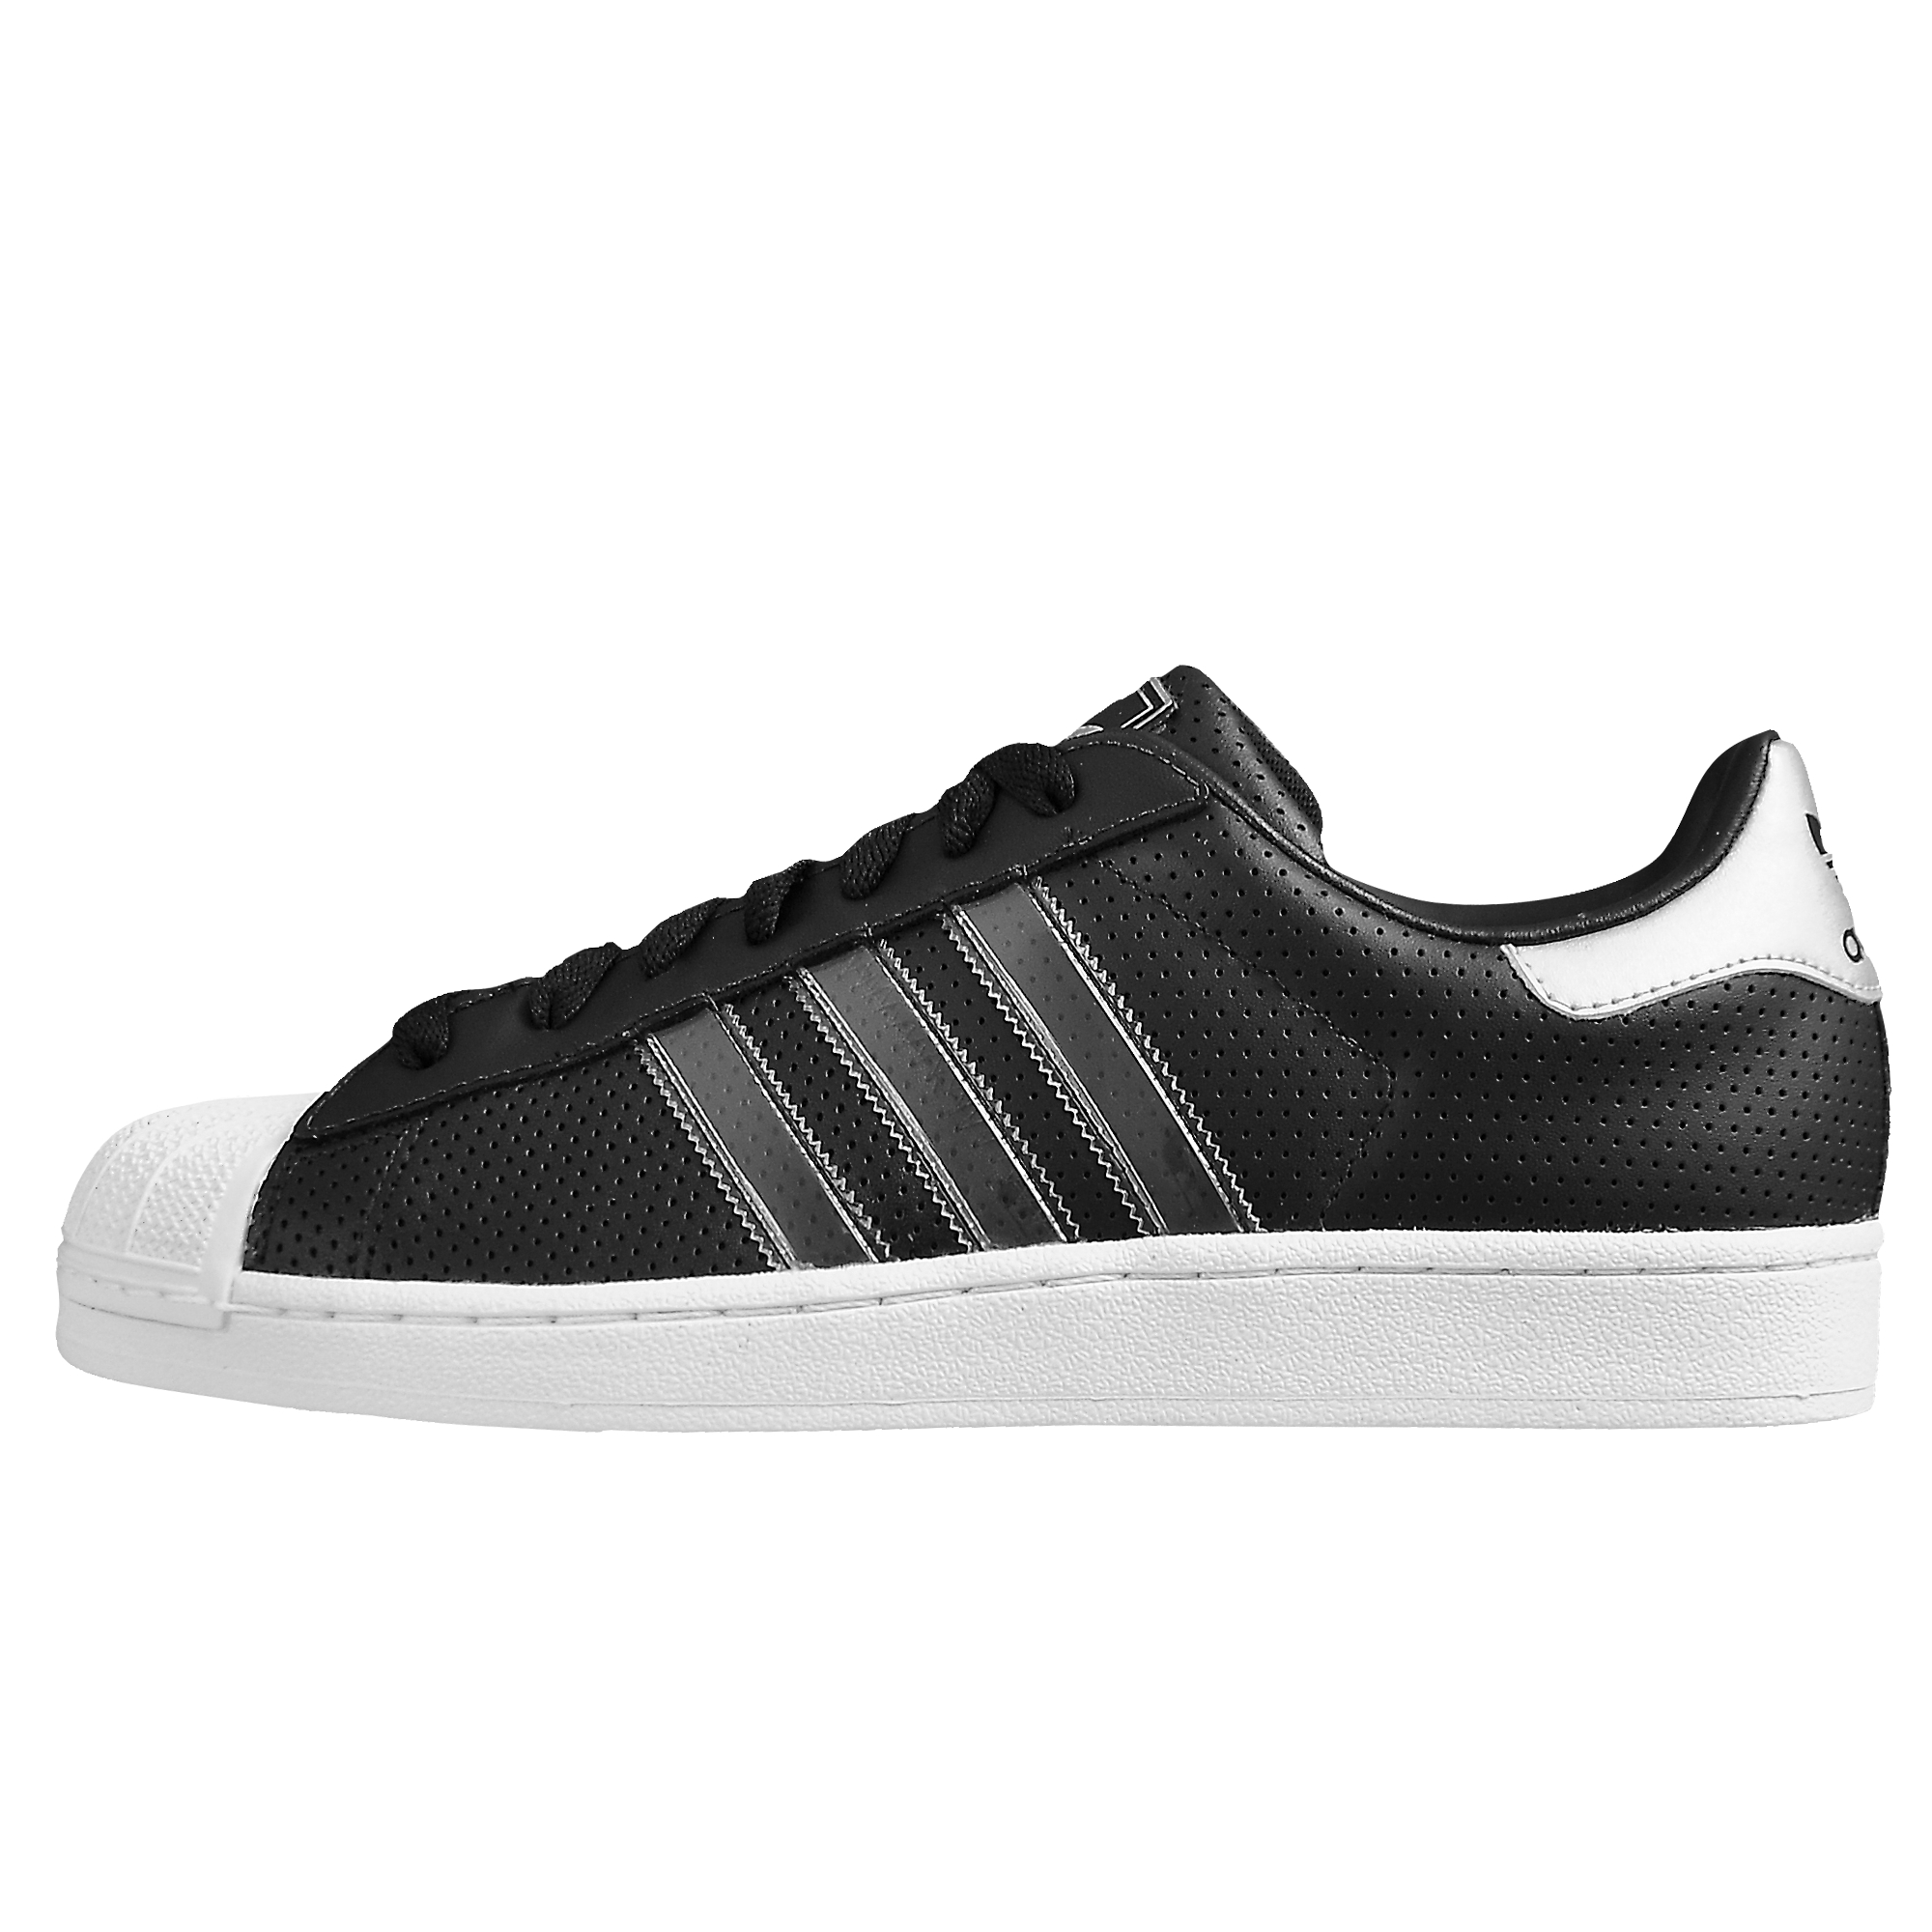 adidas superstar ii is spor ayakkab?